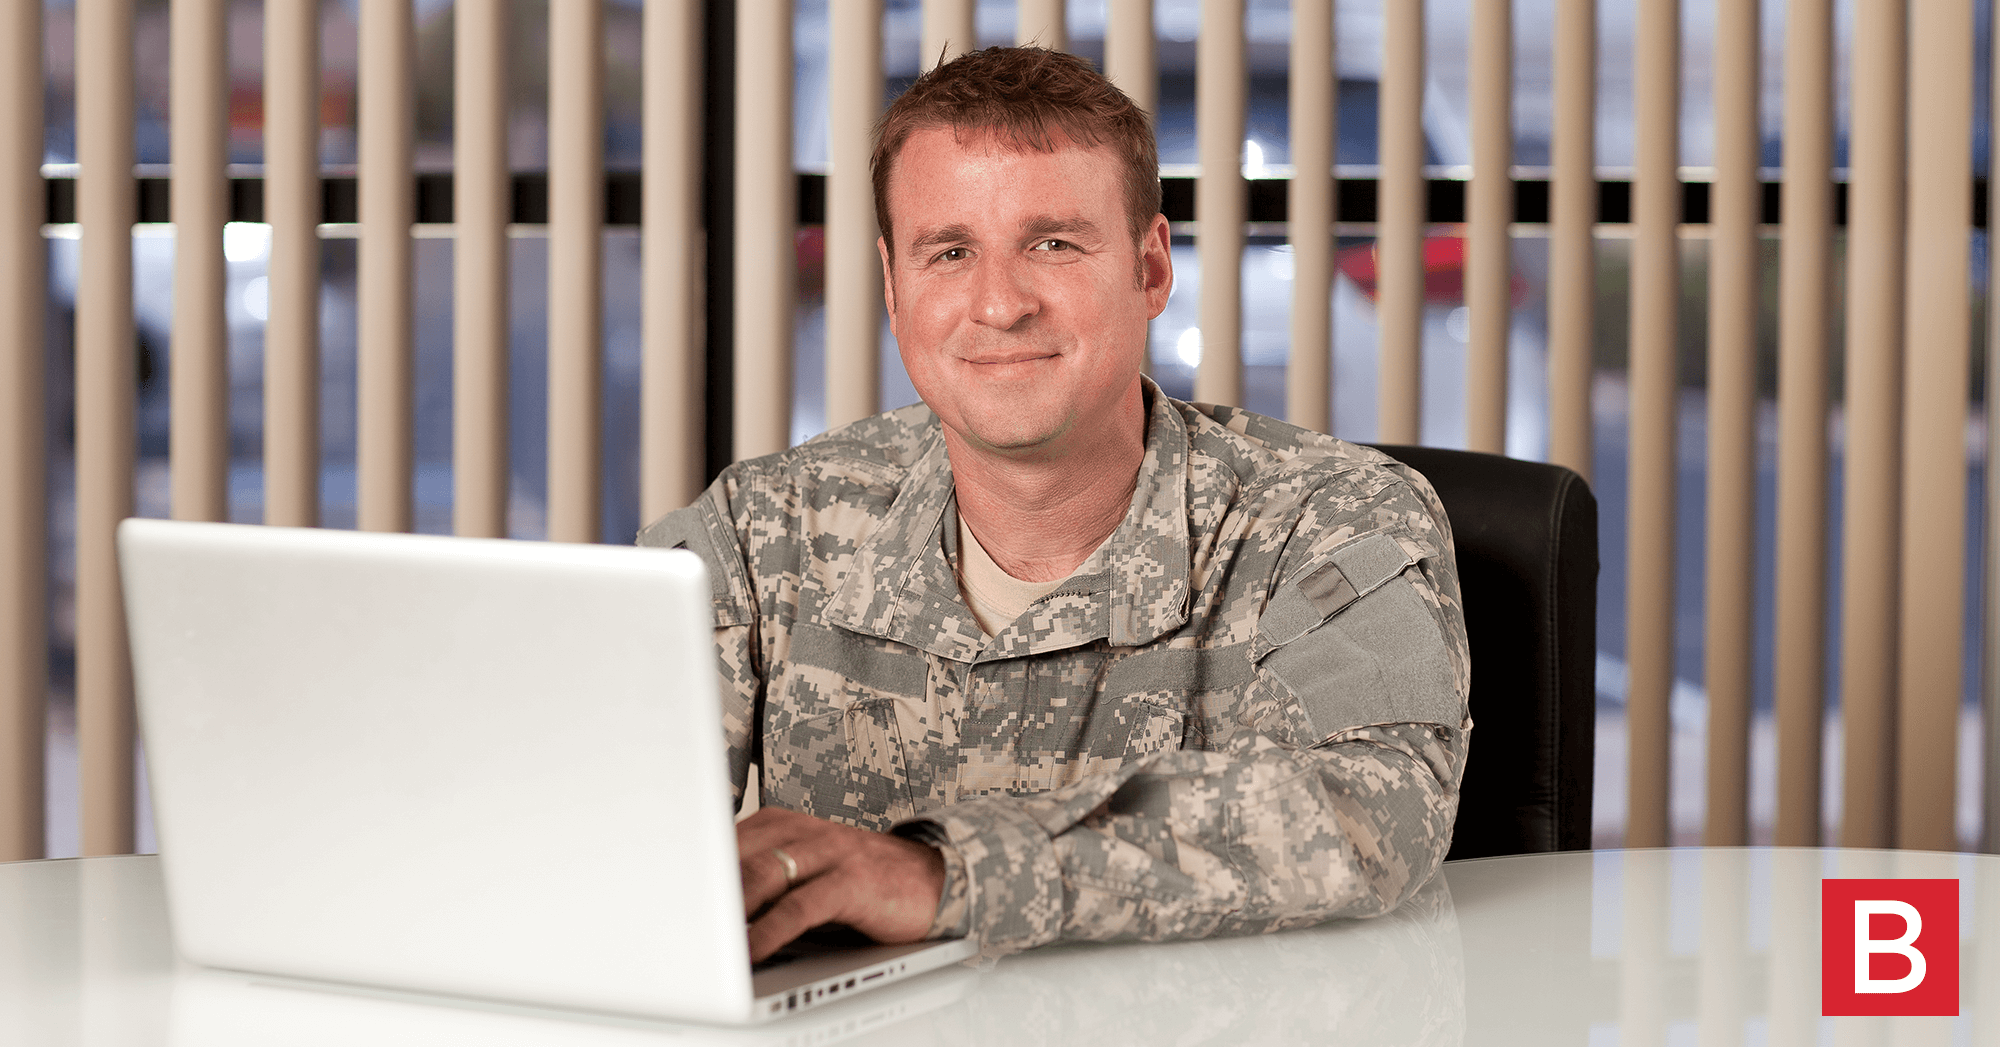 Help for Veterans—at Home and in the Community